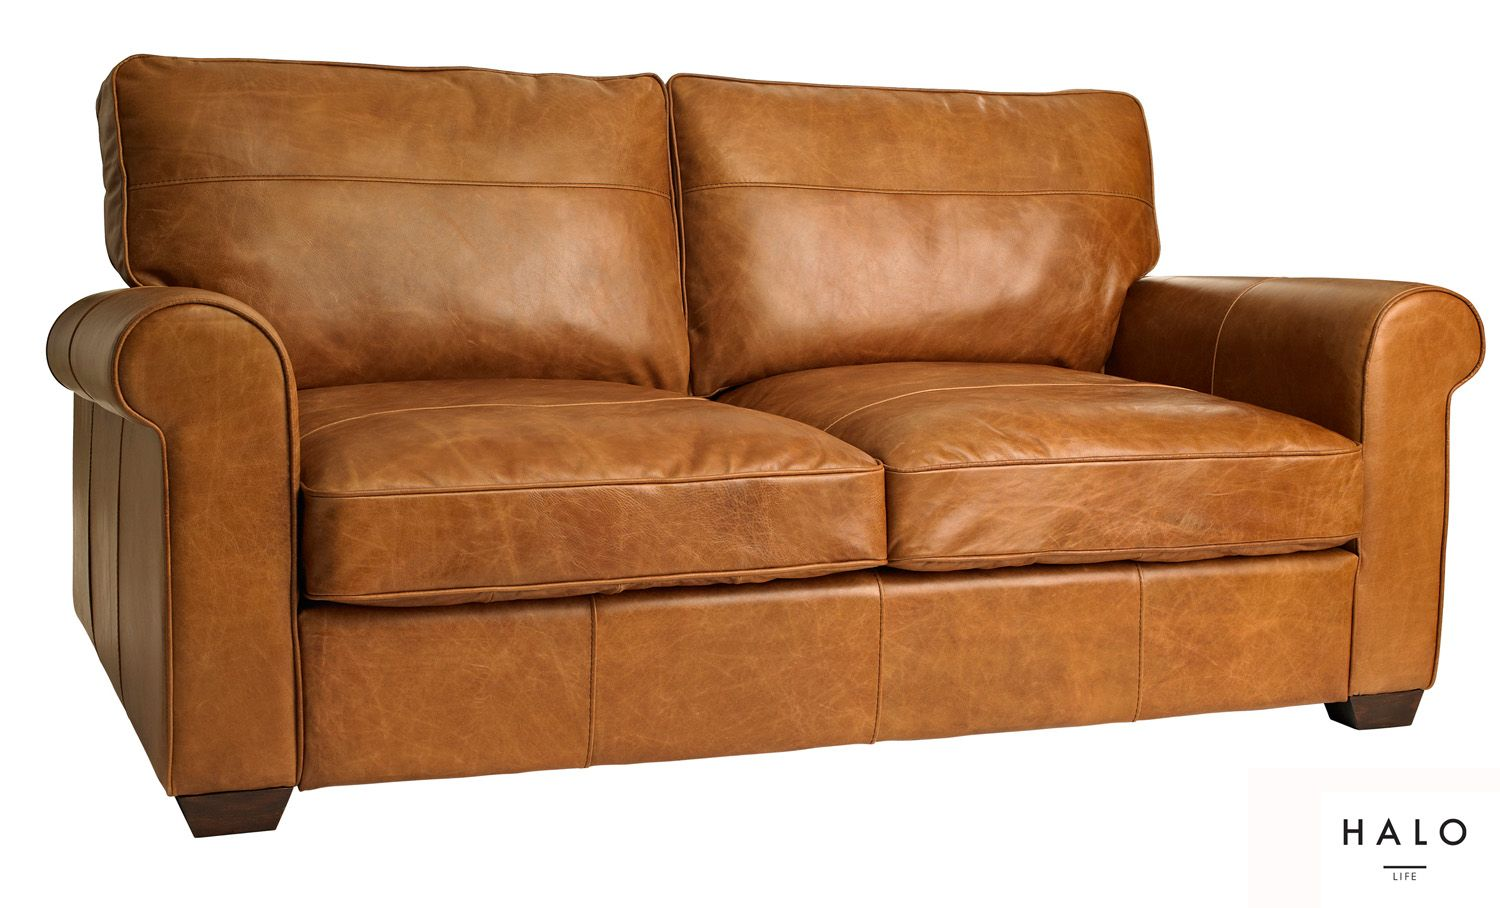 Halo Hudson 3 Seater Sofa Biker Dark Brown Tan leather